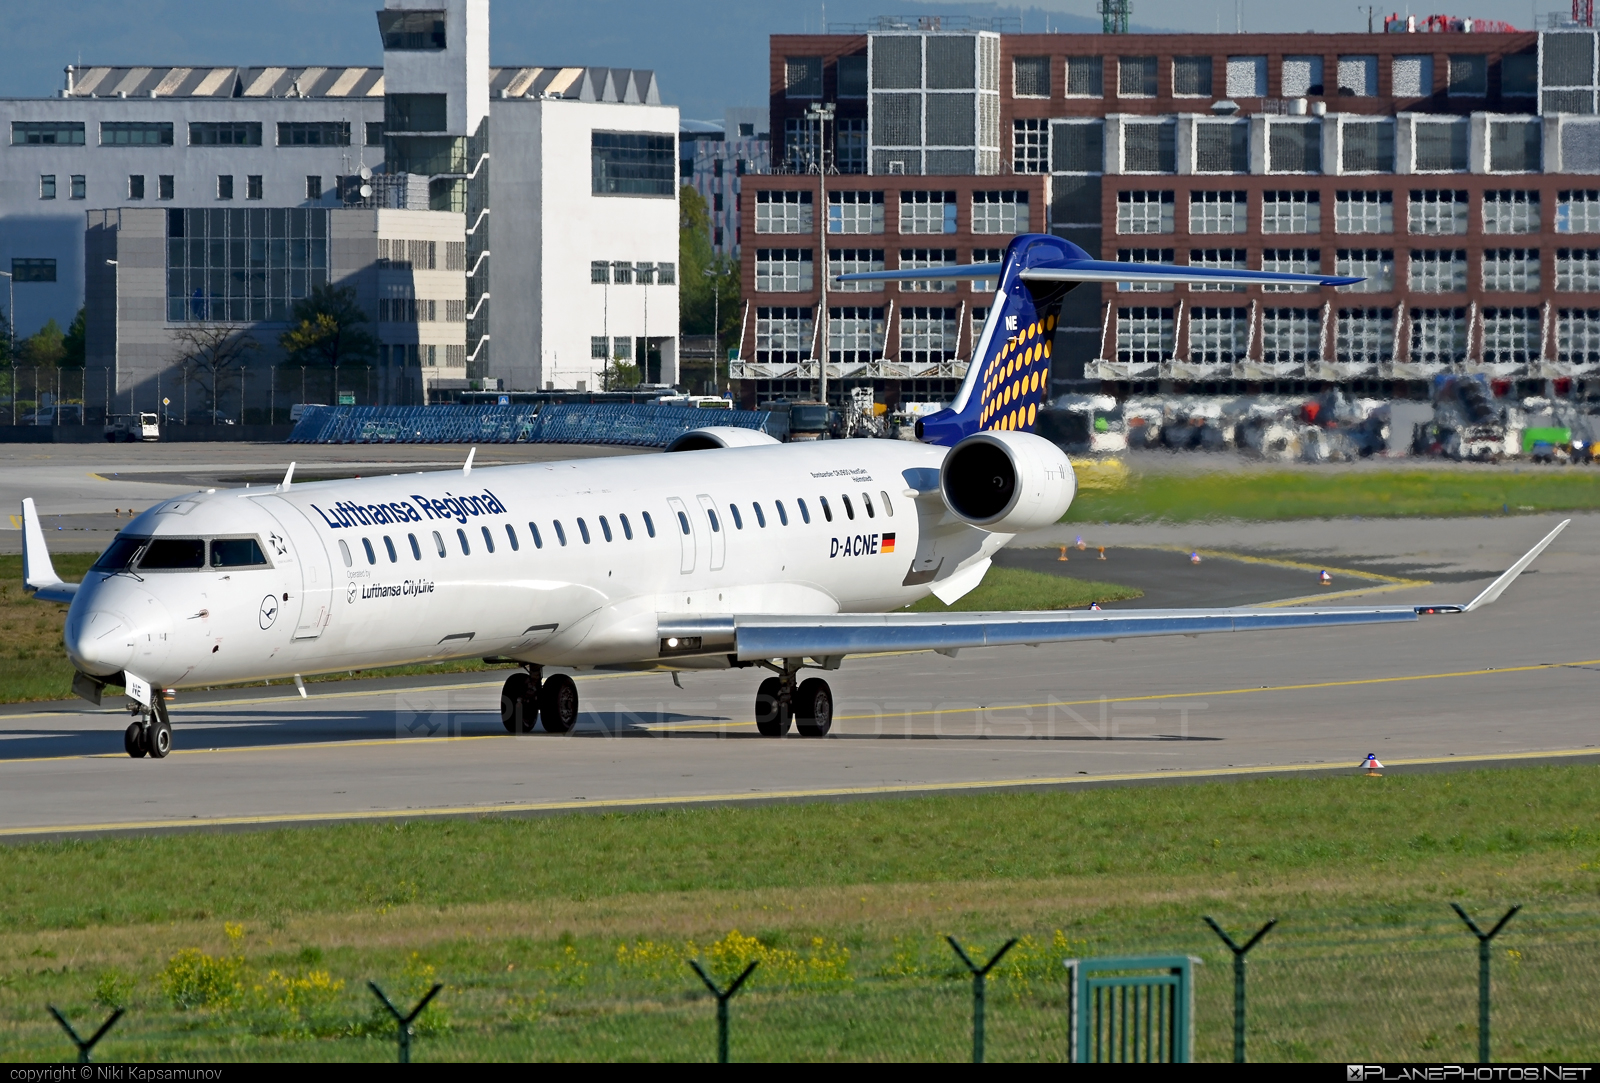 Bombardier CRJ900 - D-ACNE operated by Lufthansa CityLine #bombardier #crj900 #lufthansa #lufthansacityline